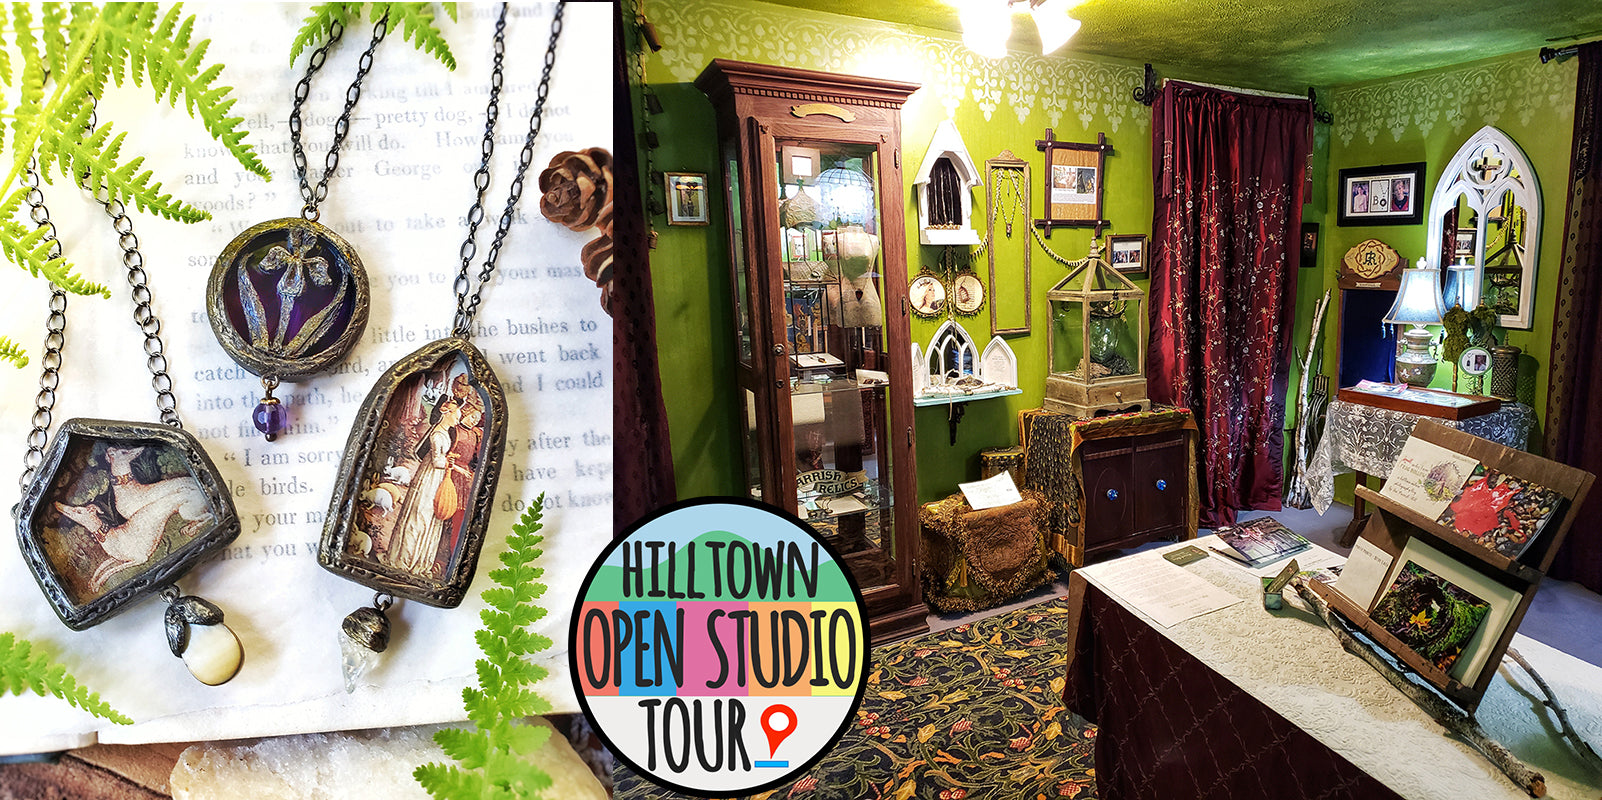 hilltown open studio tour